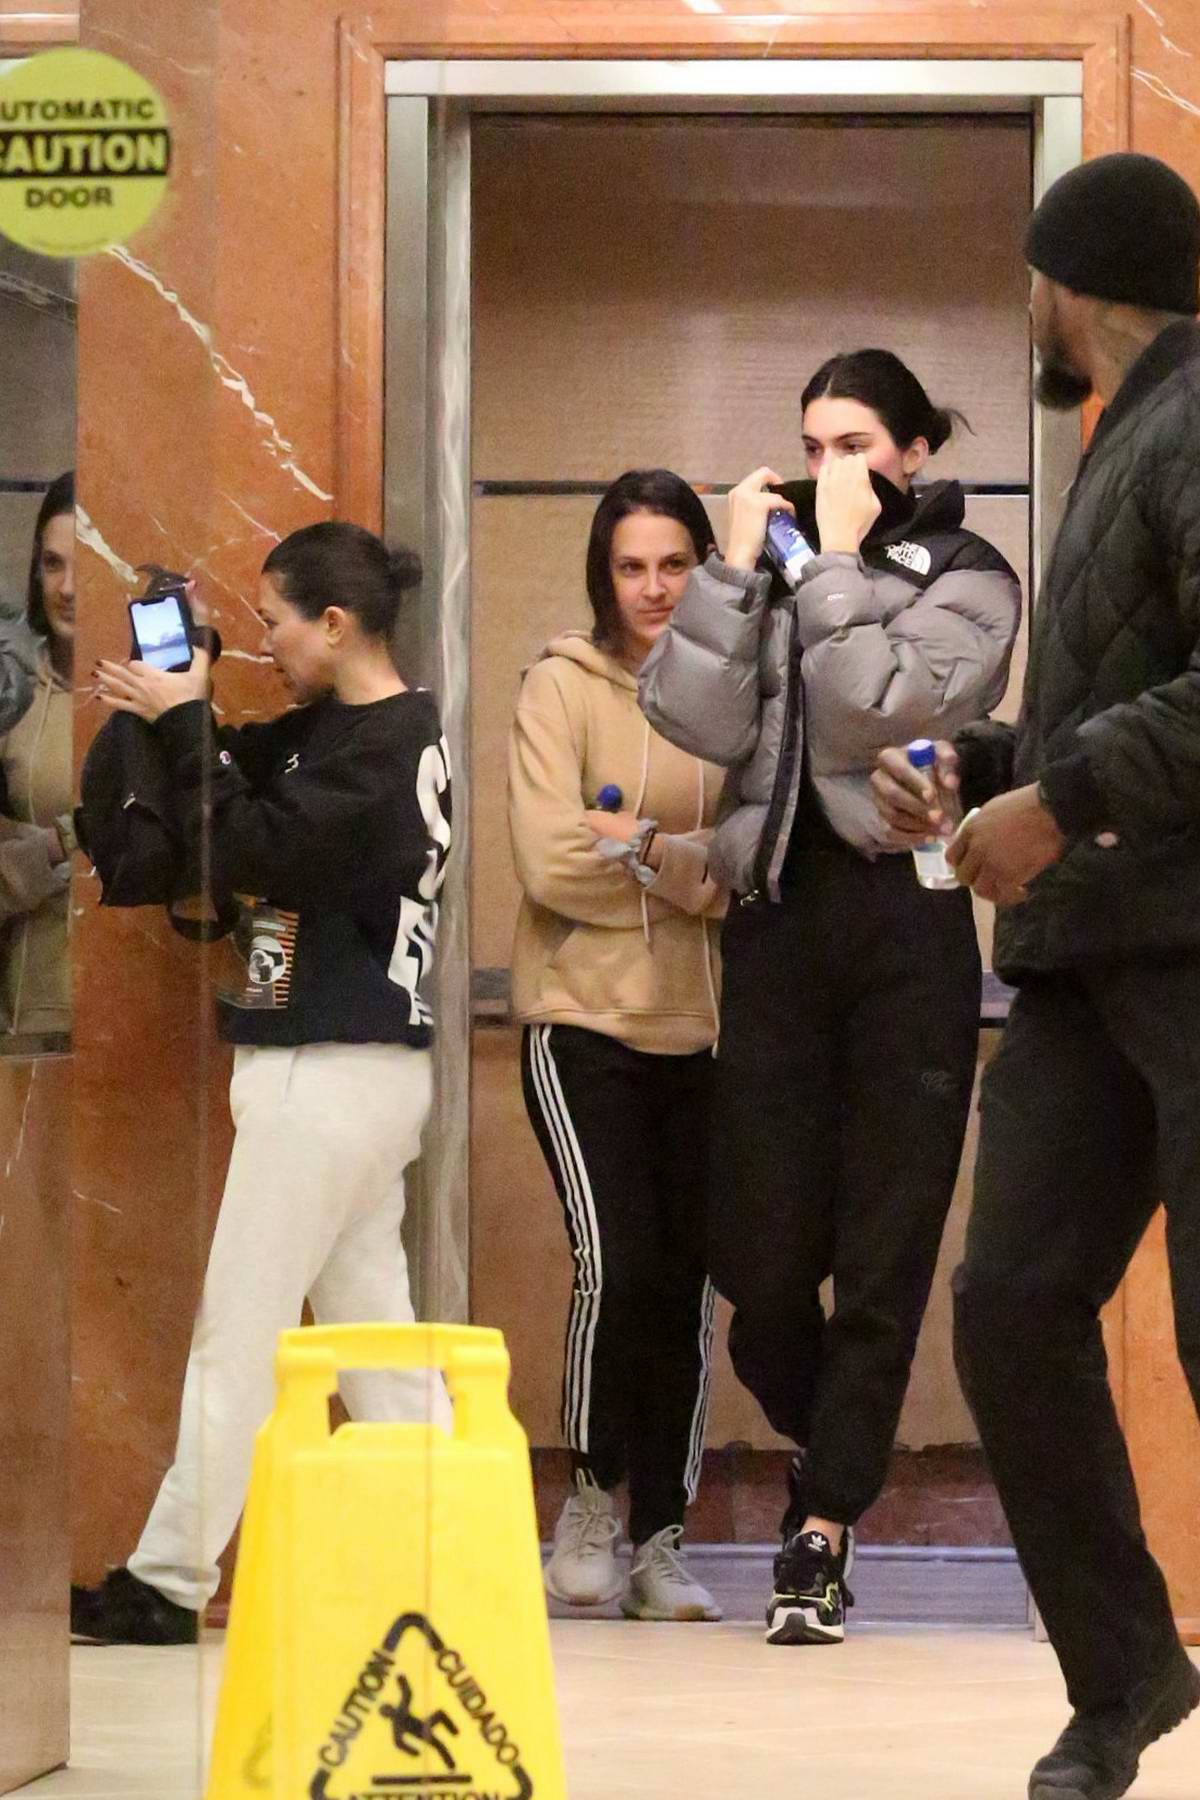 Kendall Jenner and Kourney Kardashian seen leaving a Dermatology Clinic in Beverly Hills, Los Angeles